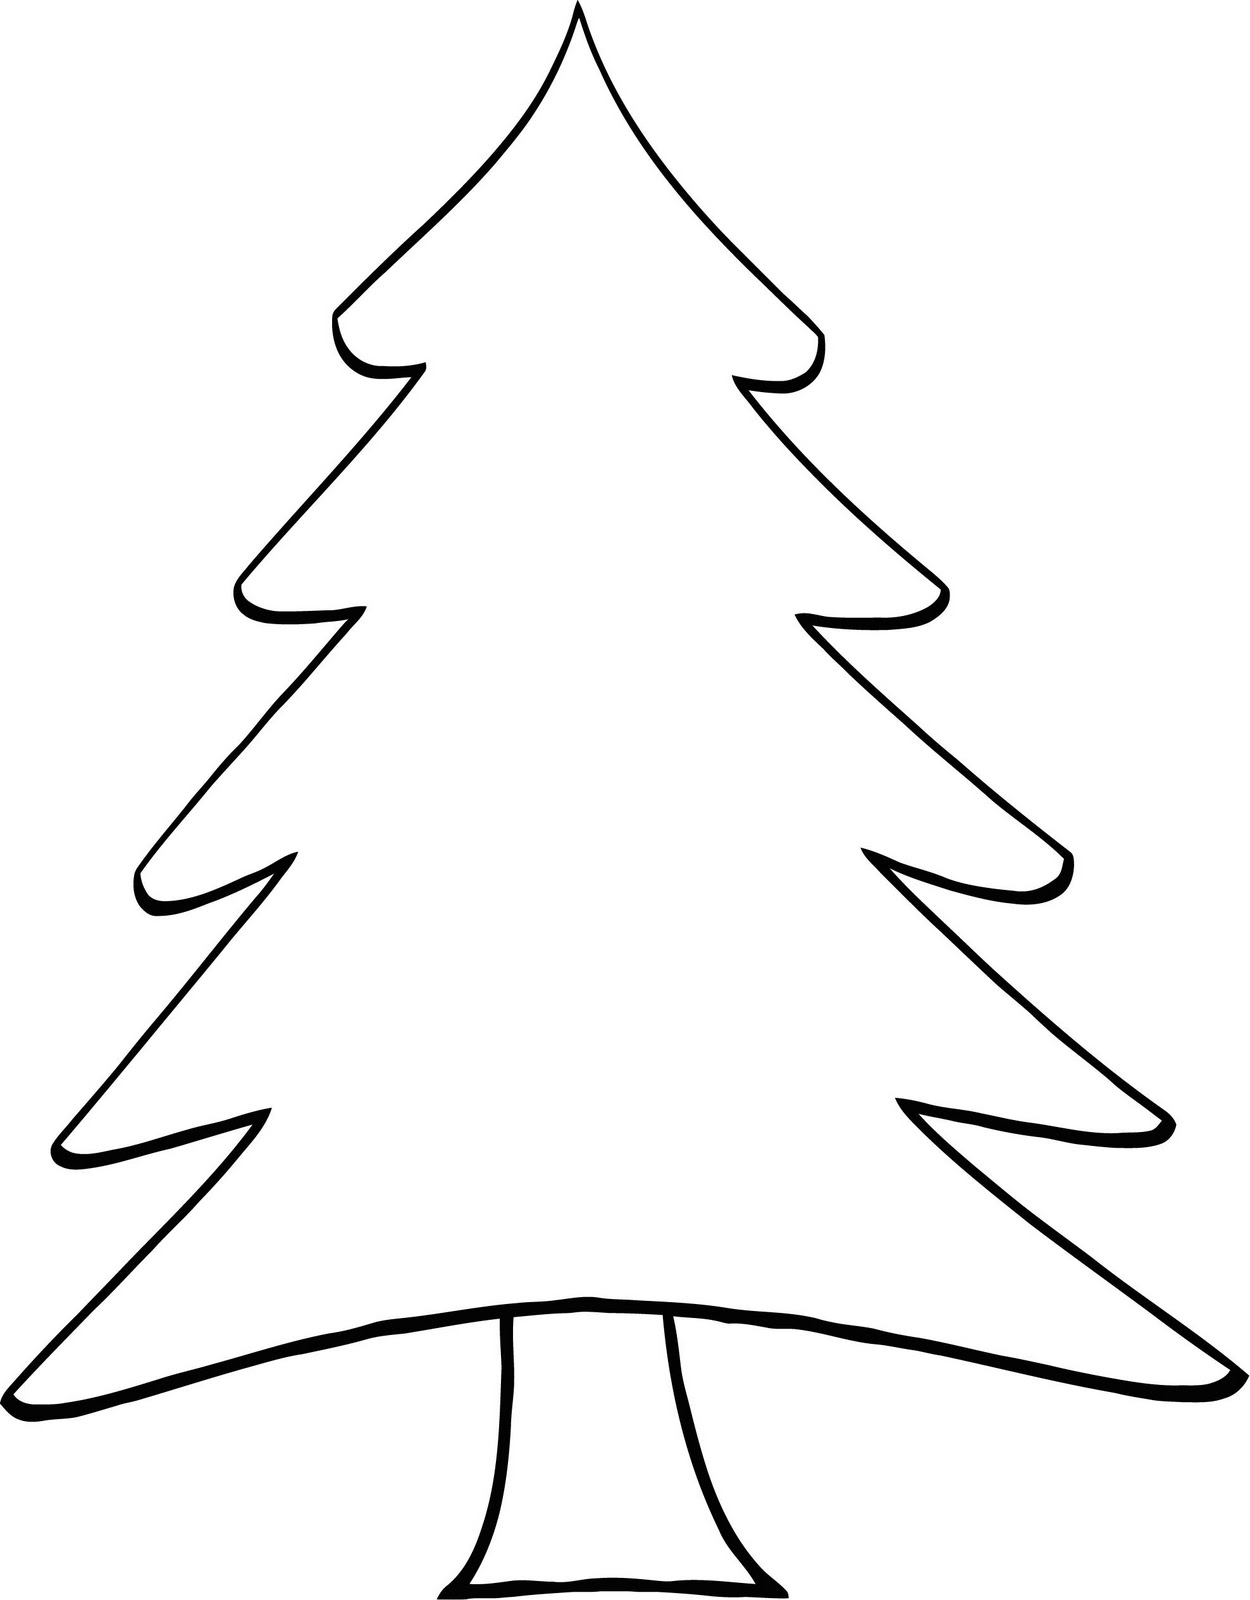 1250x1600 Free Pine Tree Outline, Hanslodge Clip Art Collection